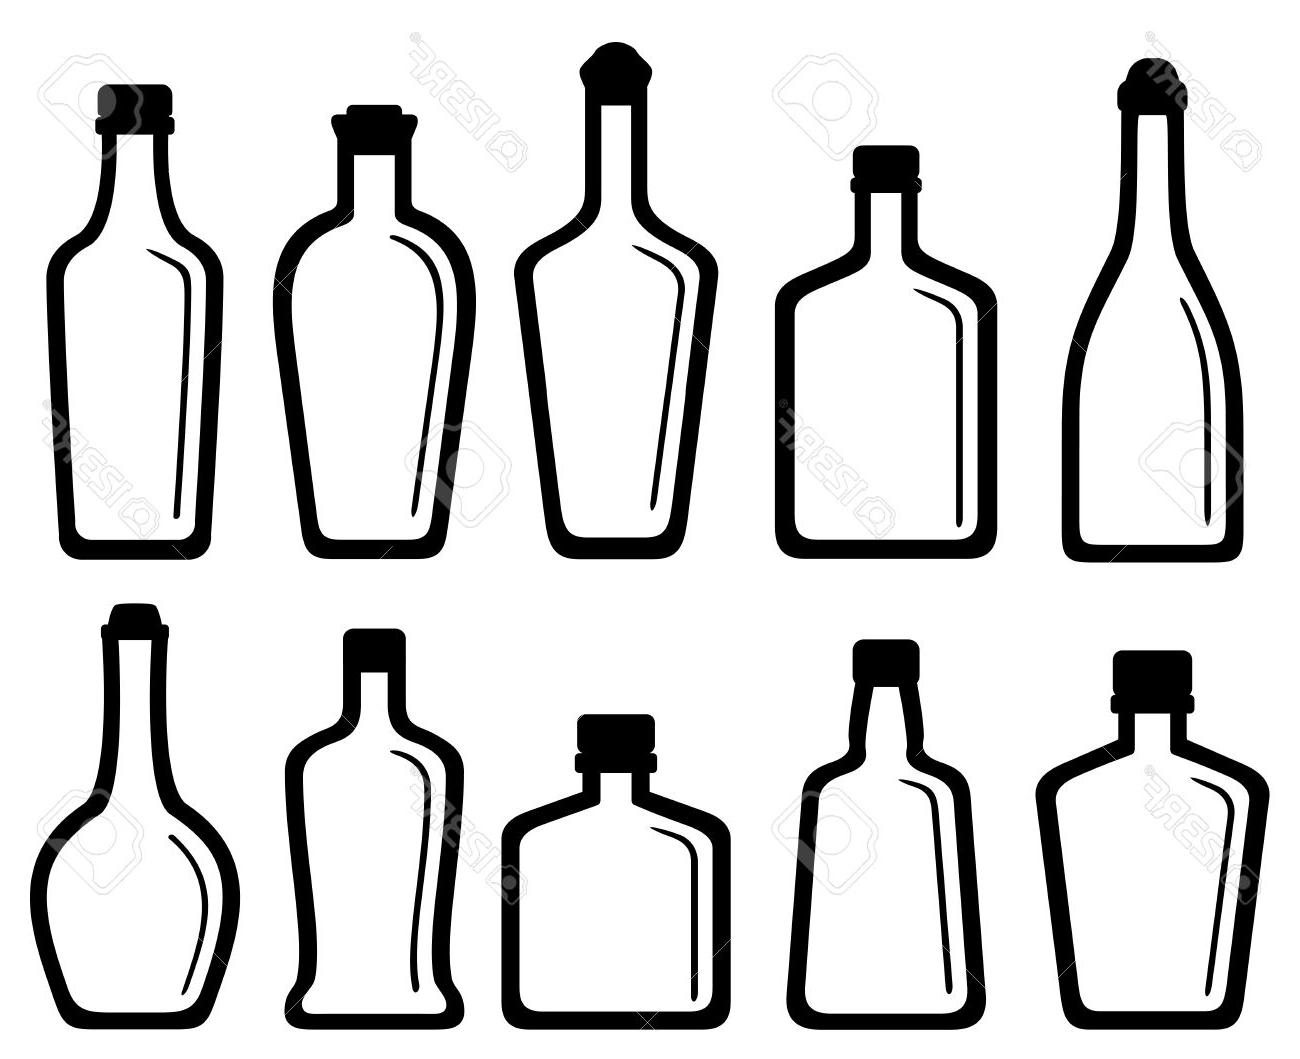 Bottle clipart silhouette. Awesome design digital collection